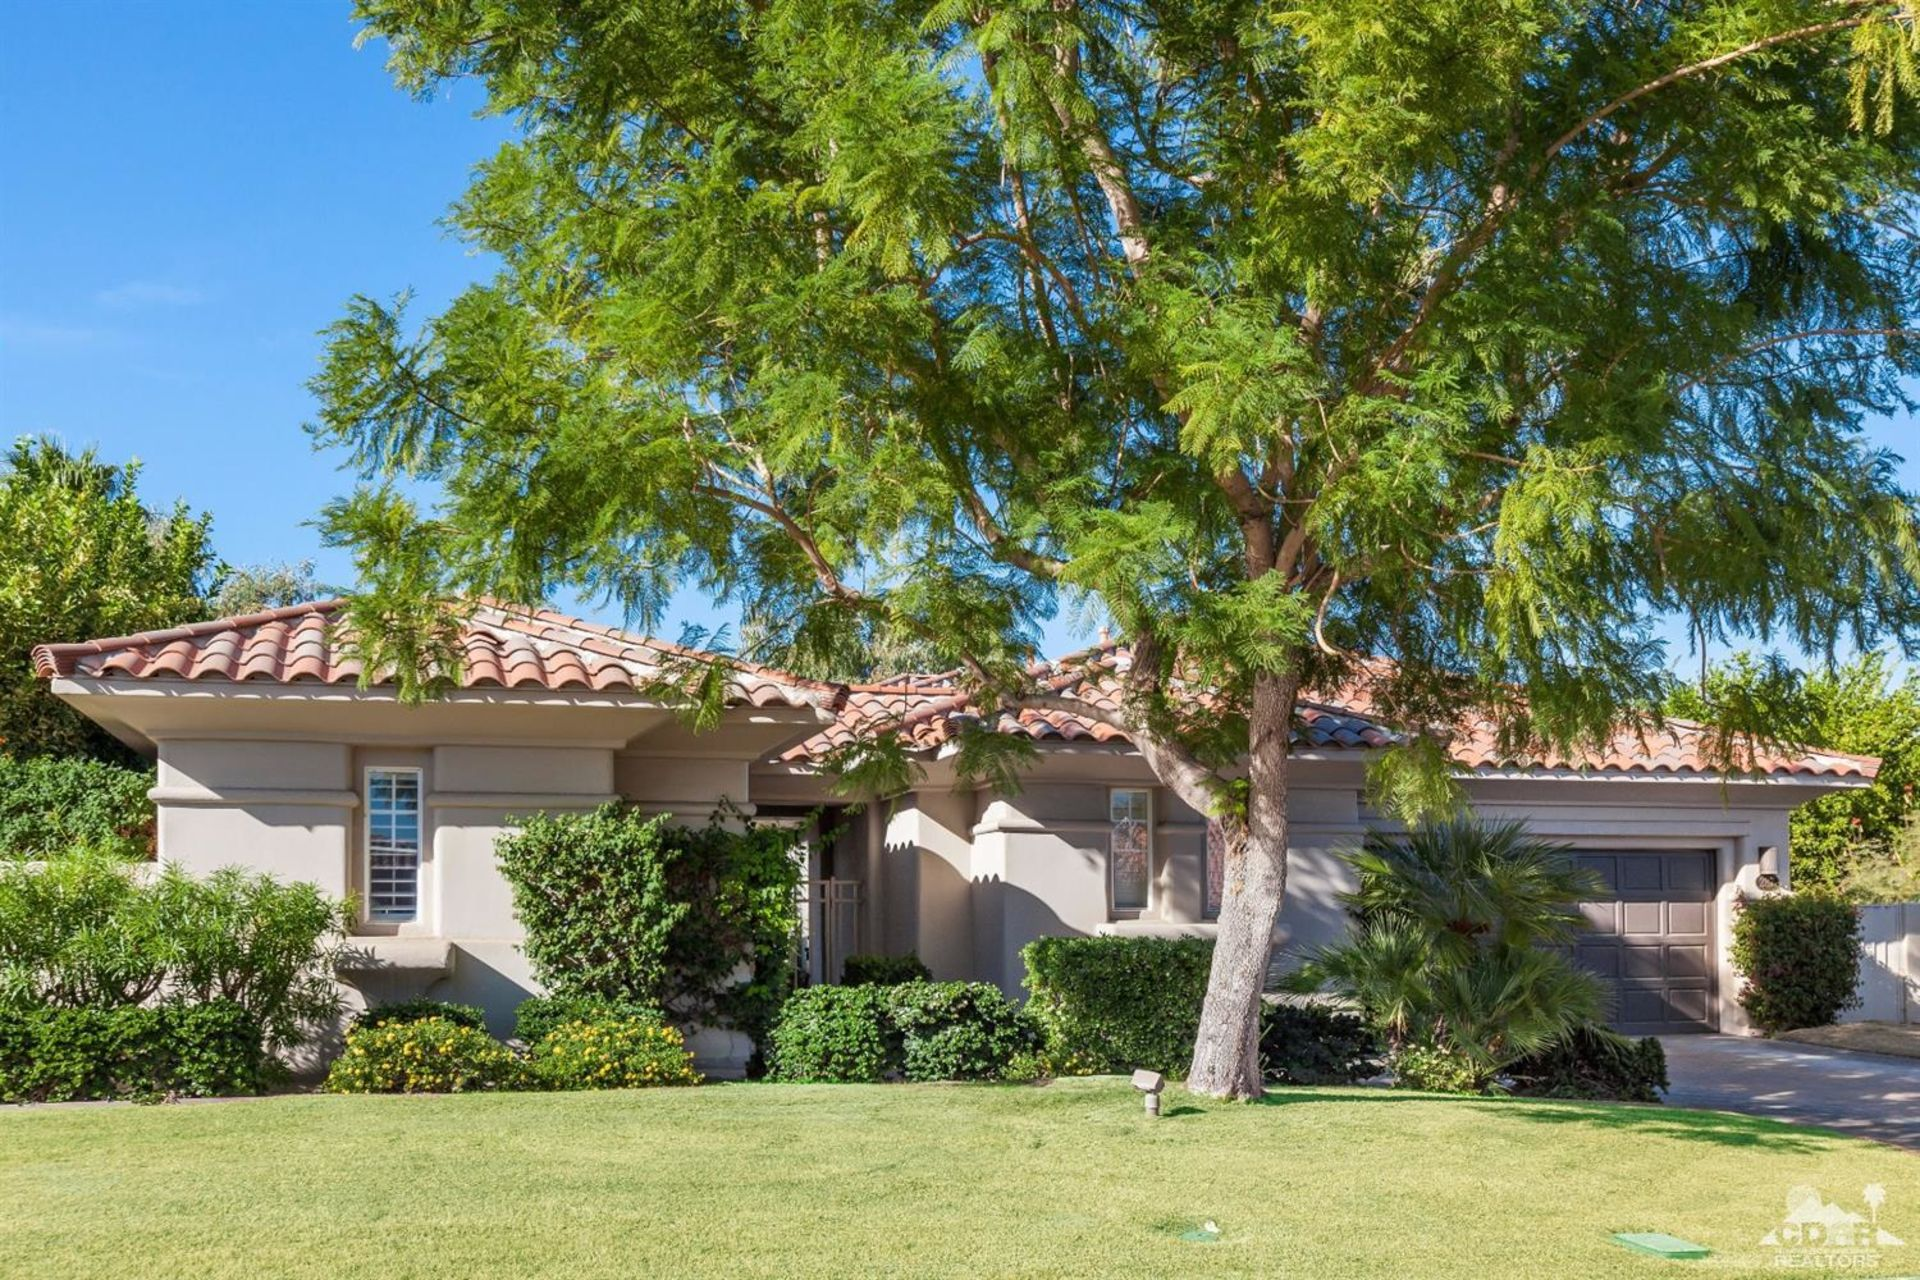 287 Loch Lomond, Rancho Mirage, CA 92270